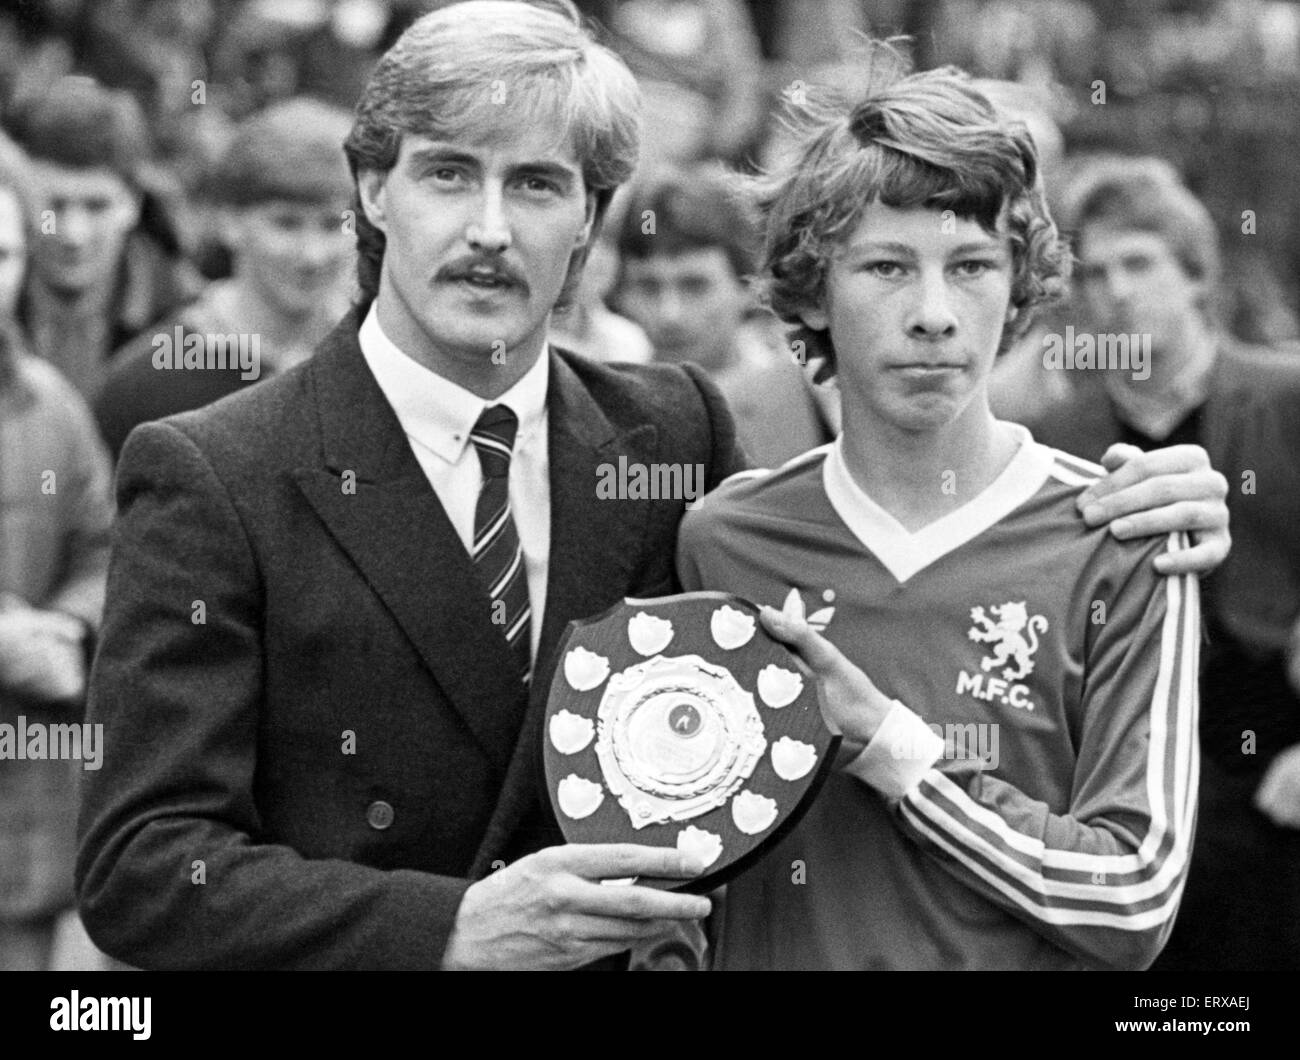 David Hodgson the Boro Junior Reds' pin-up receives their player of the Year award from Mark Nasseu, 2nd May - Stock Image